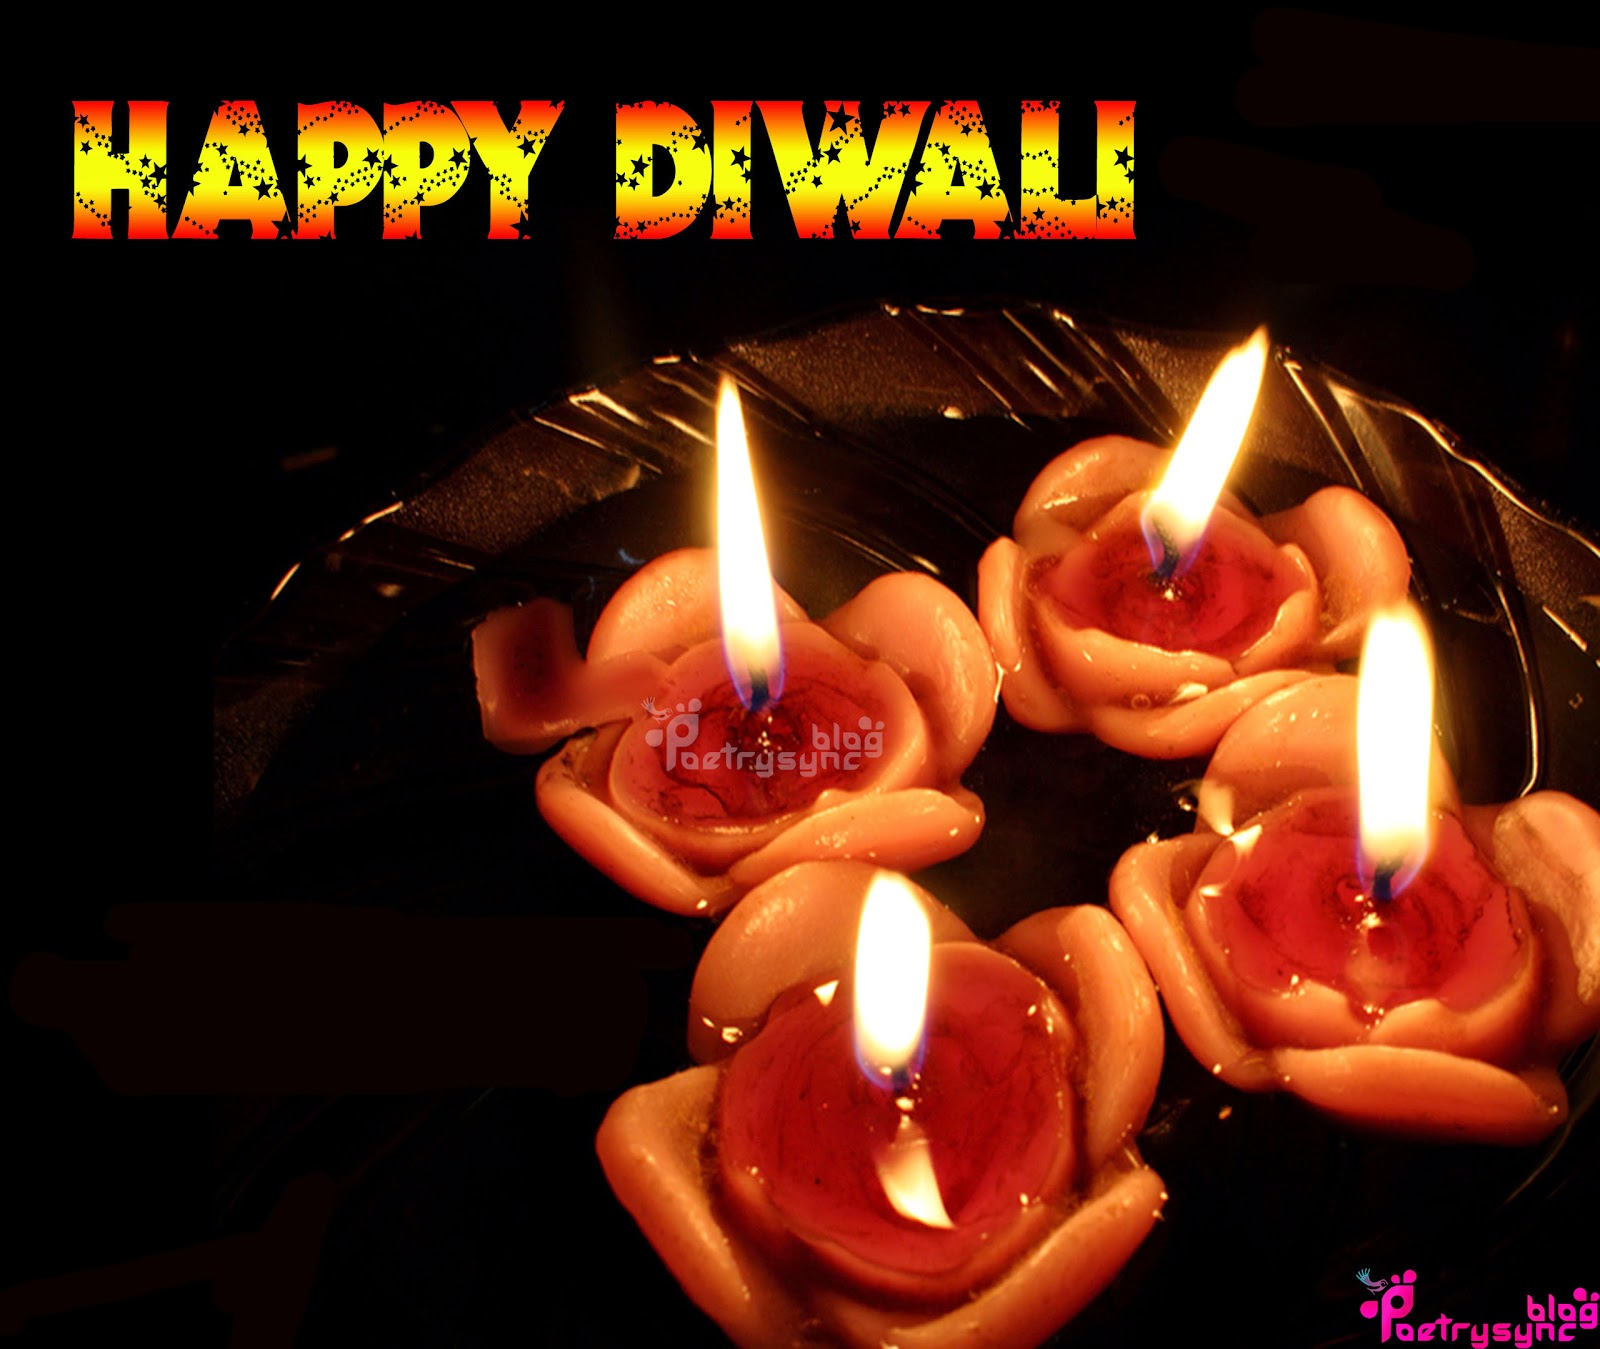 Download Wallpaper Love Diwali - Happy-diwali-Dia-Images-With-Wishes-Festival-Image-By-Poetrysync1blog  Picture_67726.jpg